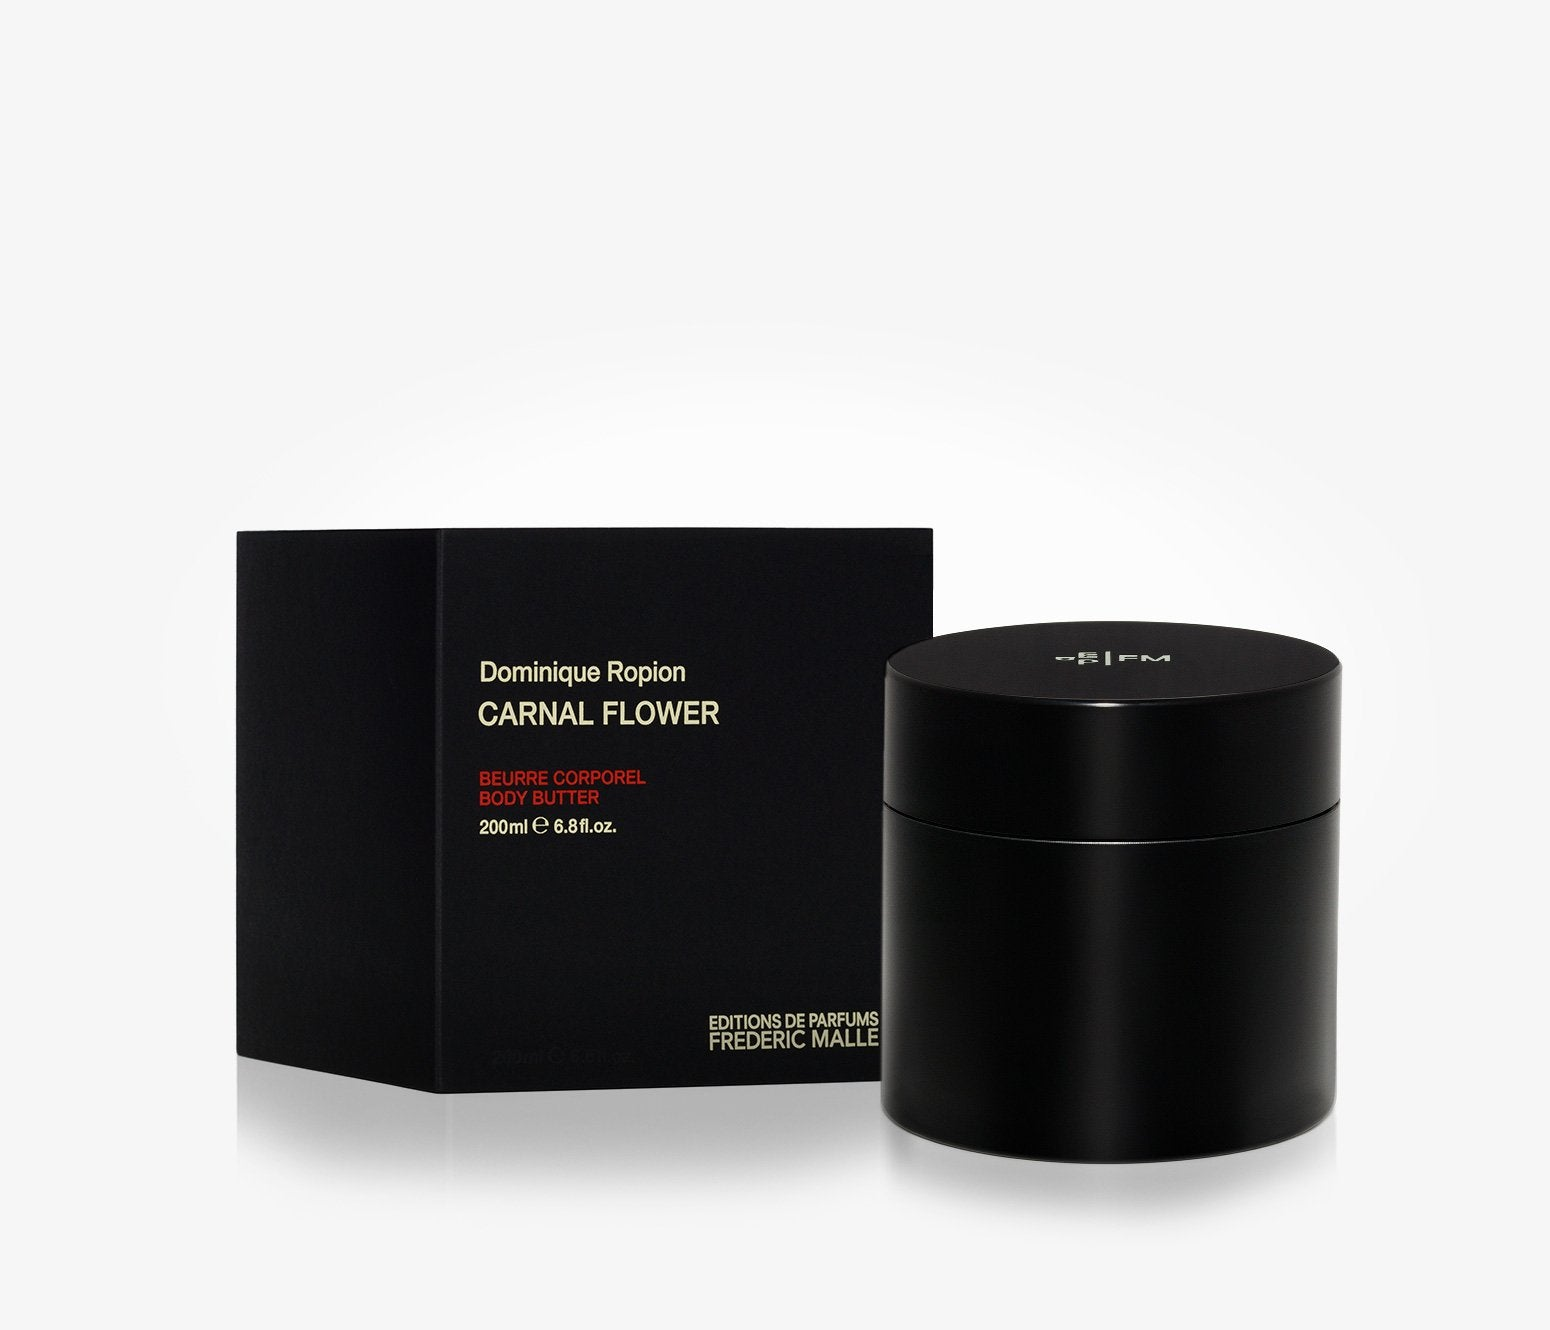 Frederic Malle - Carnal Flower Body Butter - 200ml - NEX8336 - Product Image - Body Butter - Les Senteurs